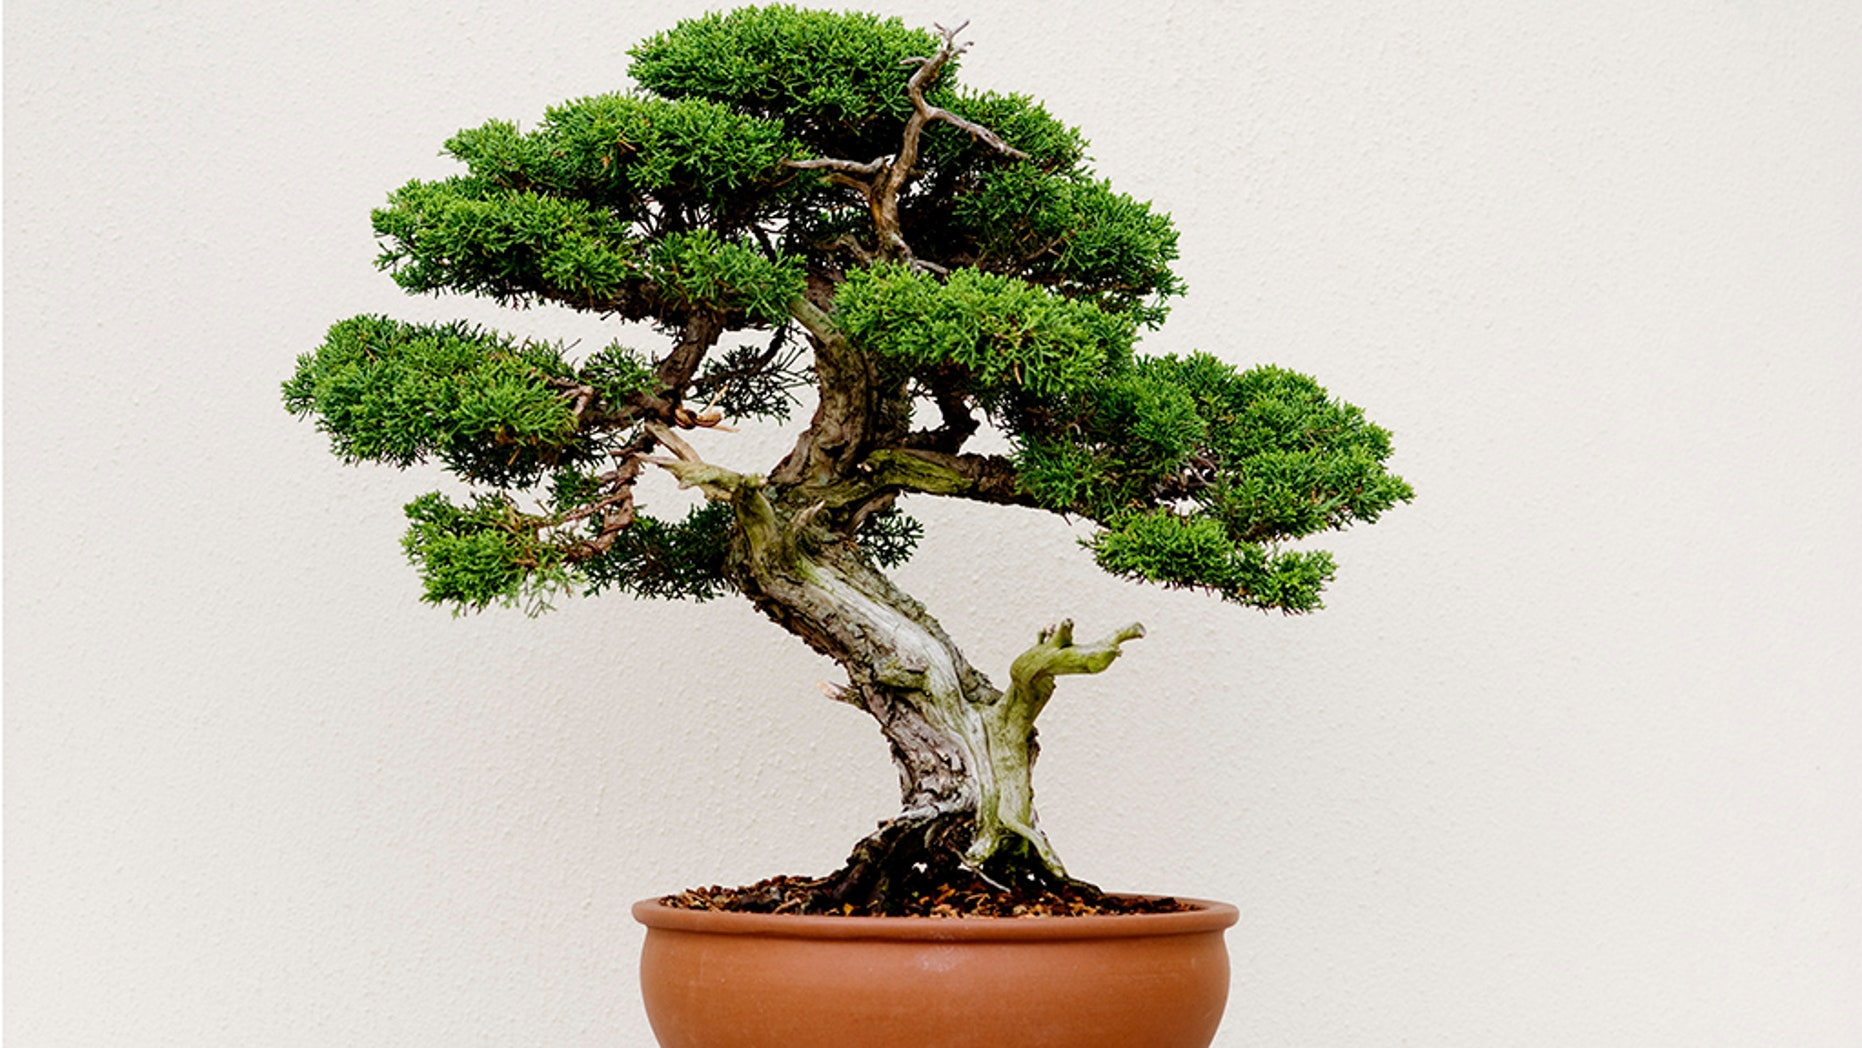 Thieves in Japan have stolen seven bonsai trees from one couple, prompting a plea on social media.